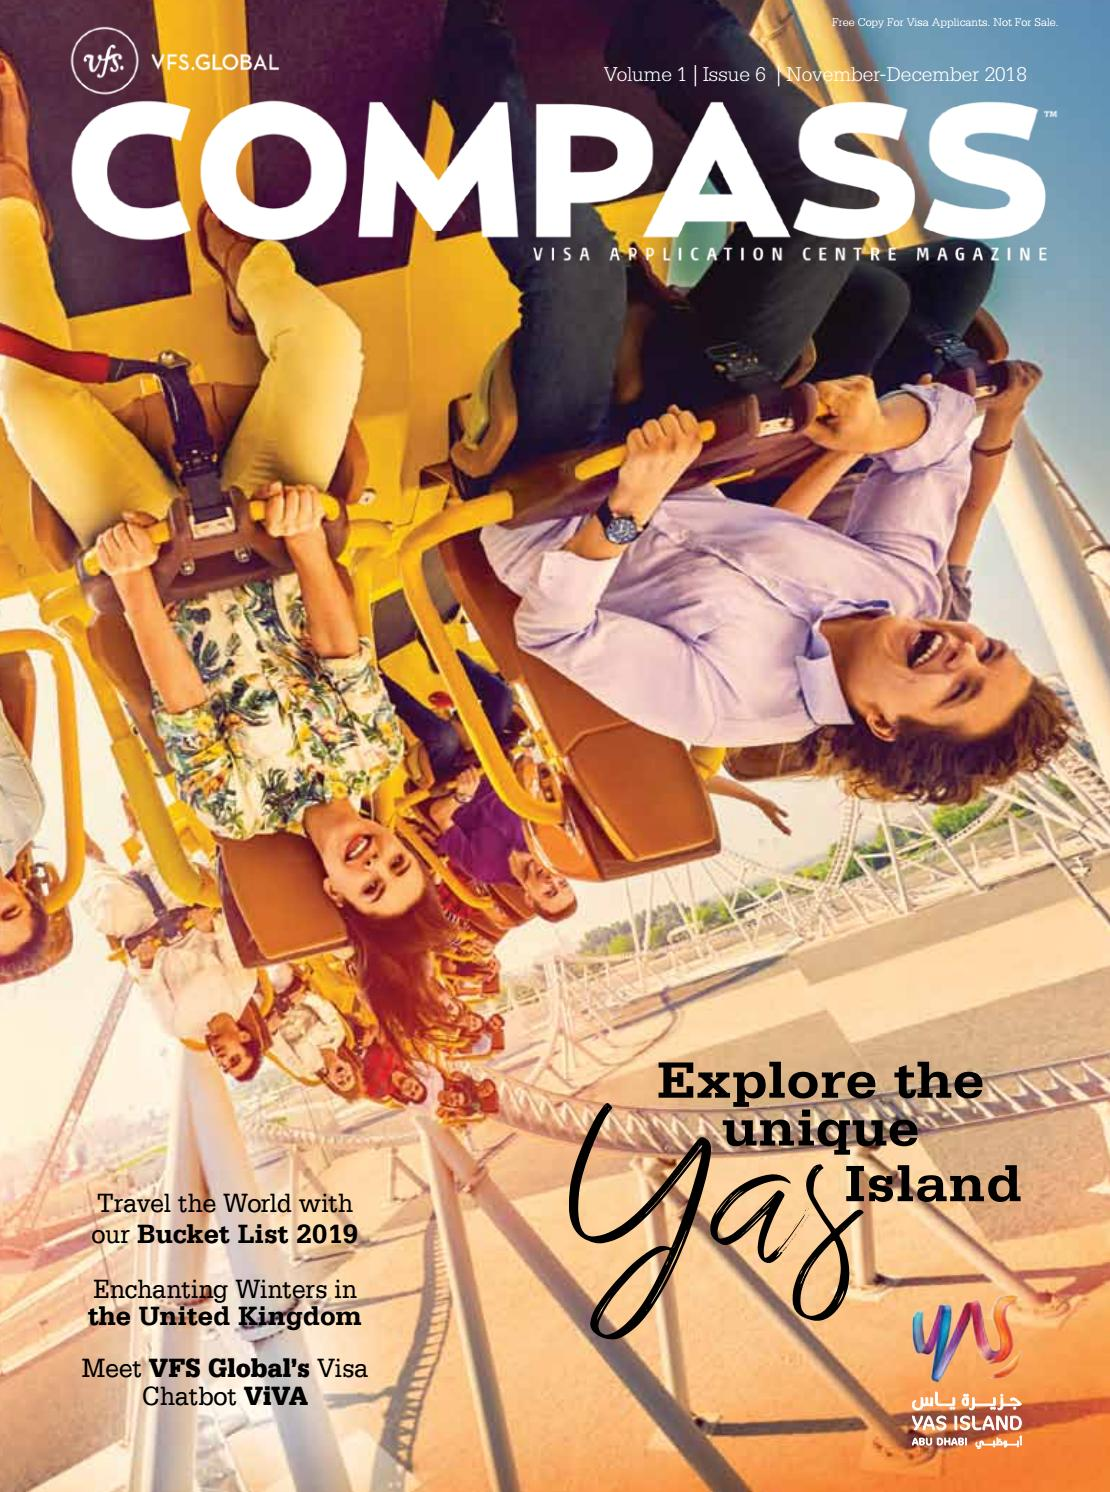 VFS Global COMPASS (India Edition) November - December 2018